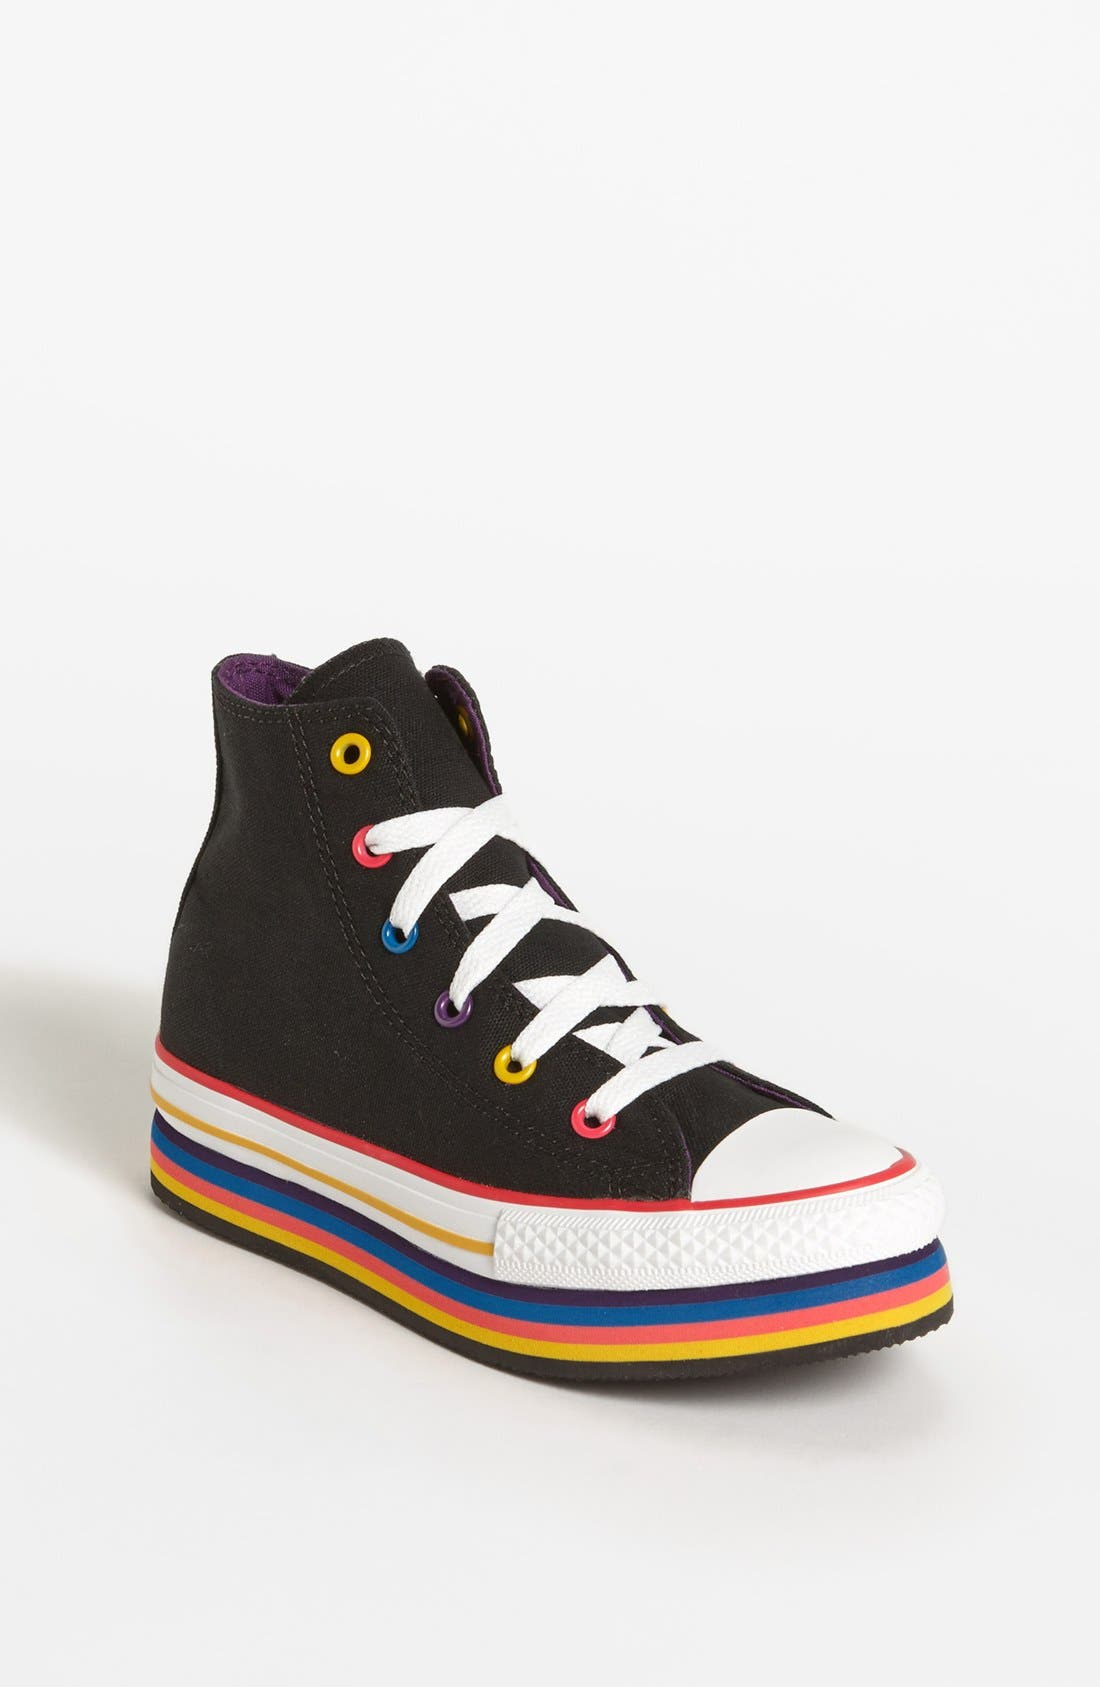 Alternate Image 1 Selected - Converse Chuck Taylor® All Star® Platform Sneaker (Toddler, Little Kid & Big Kid)